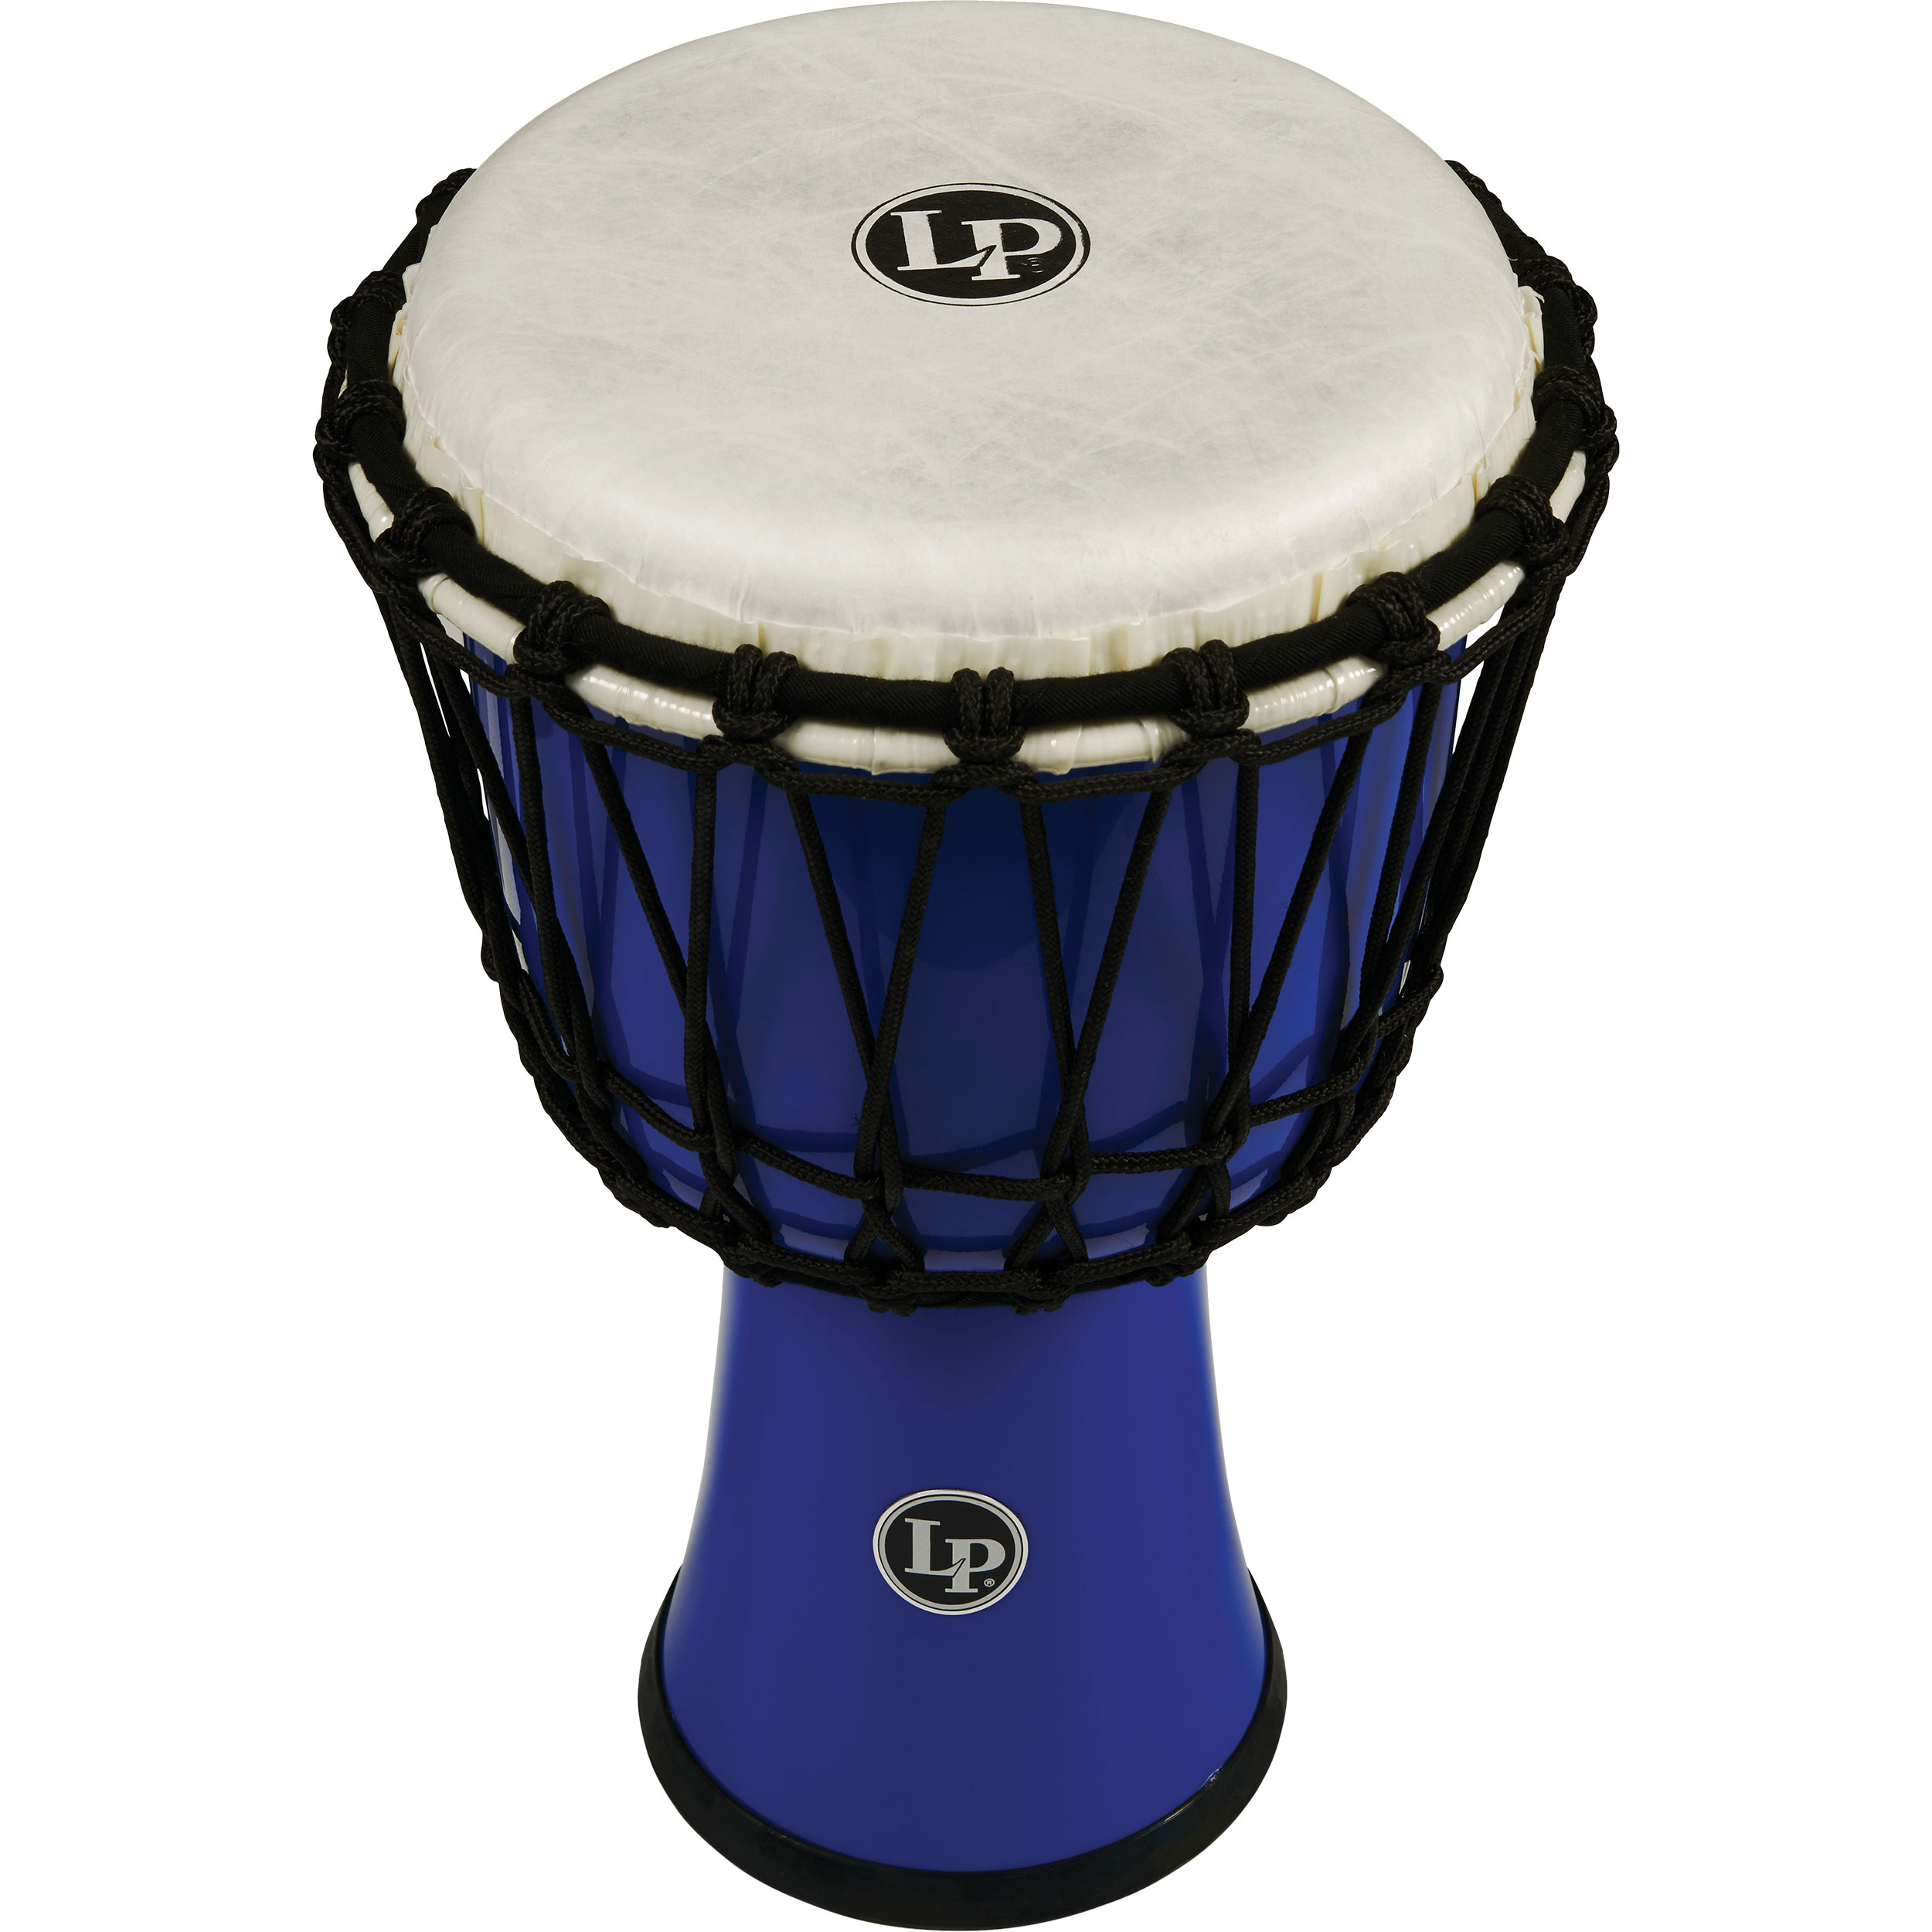 "LP 7"" Rope Tuned Circle Djembe in Blue"